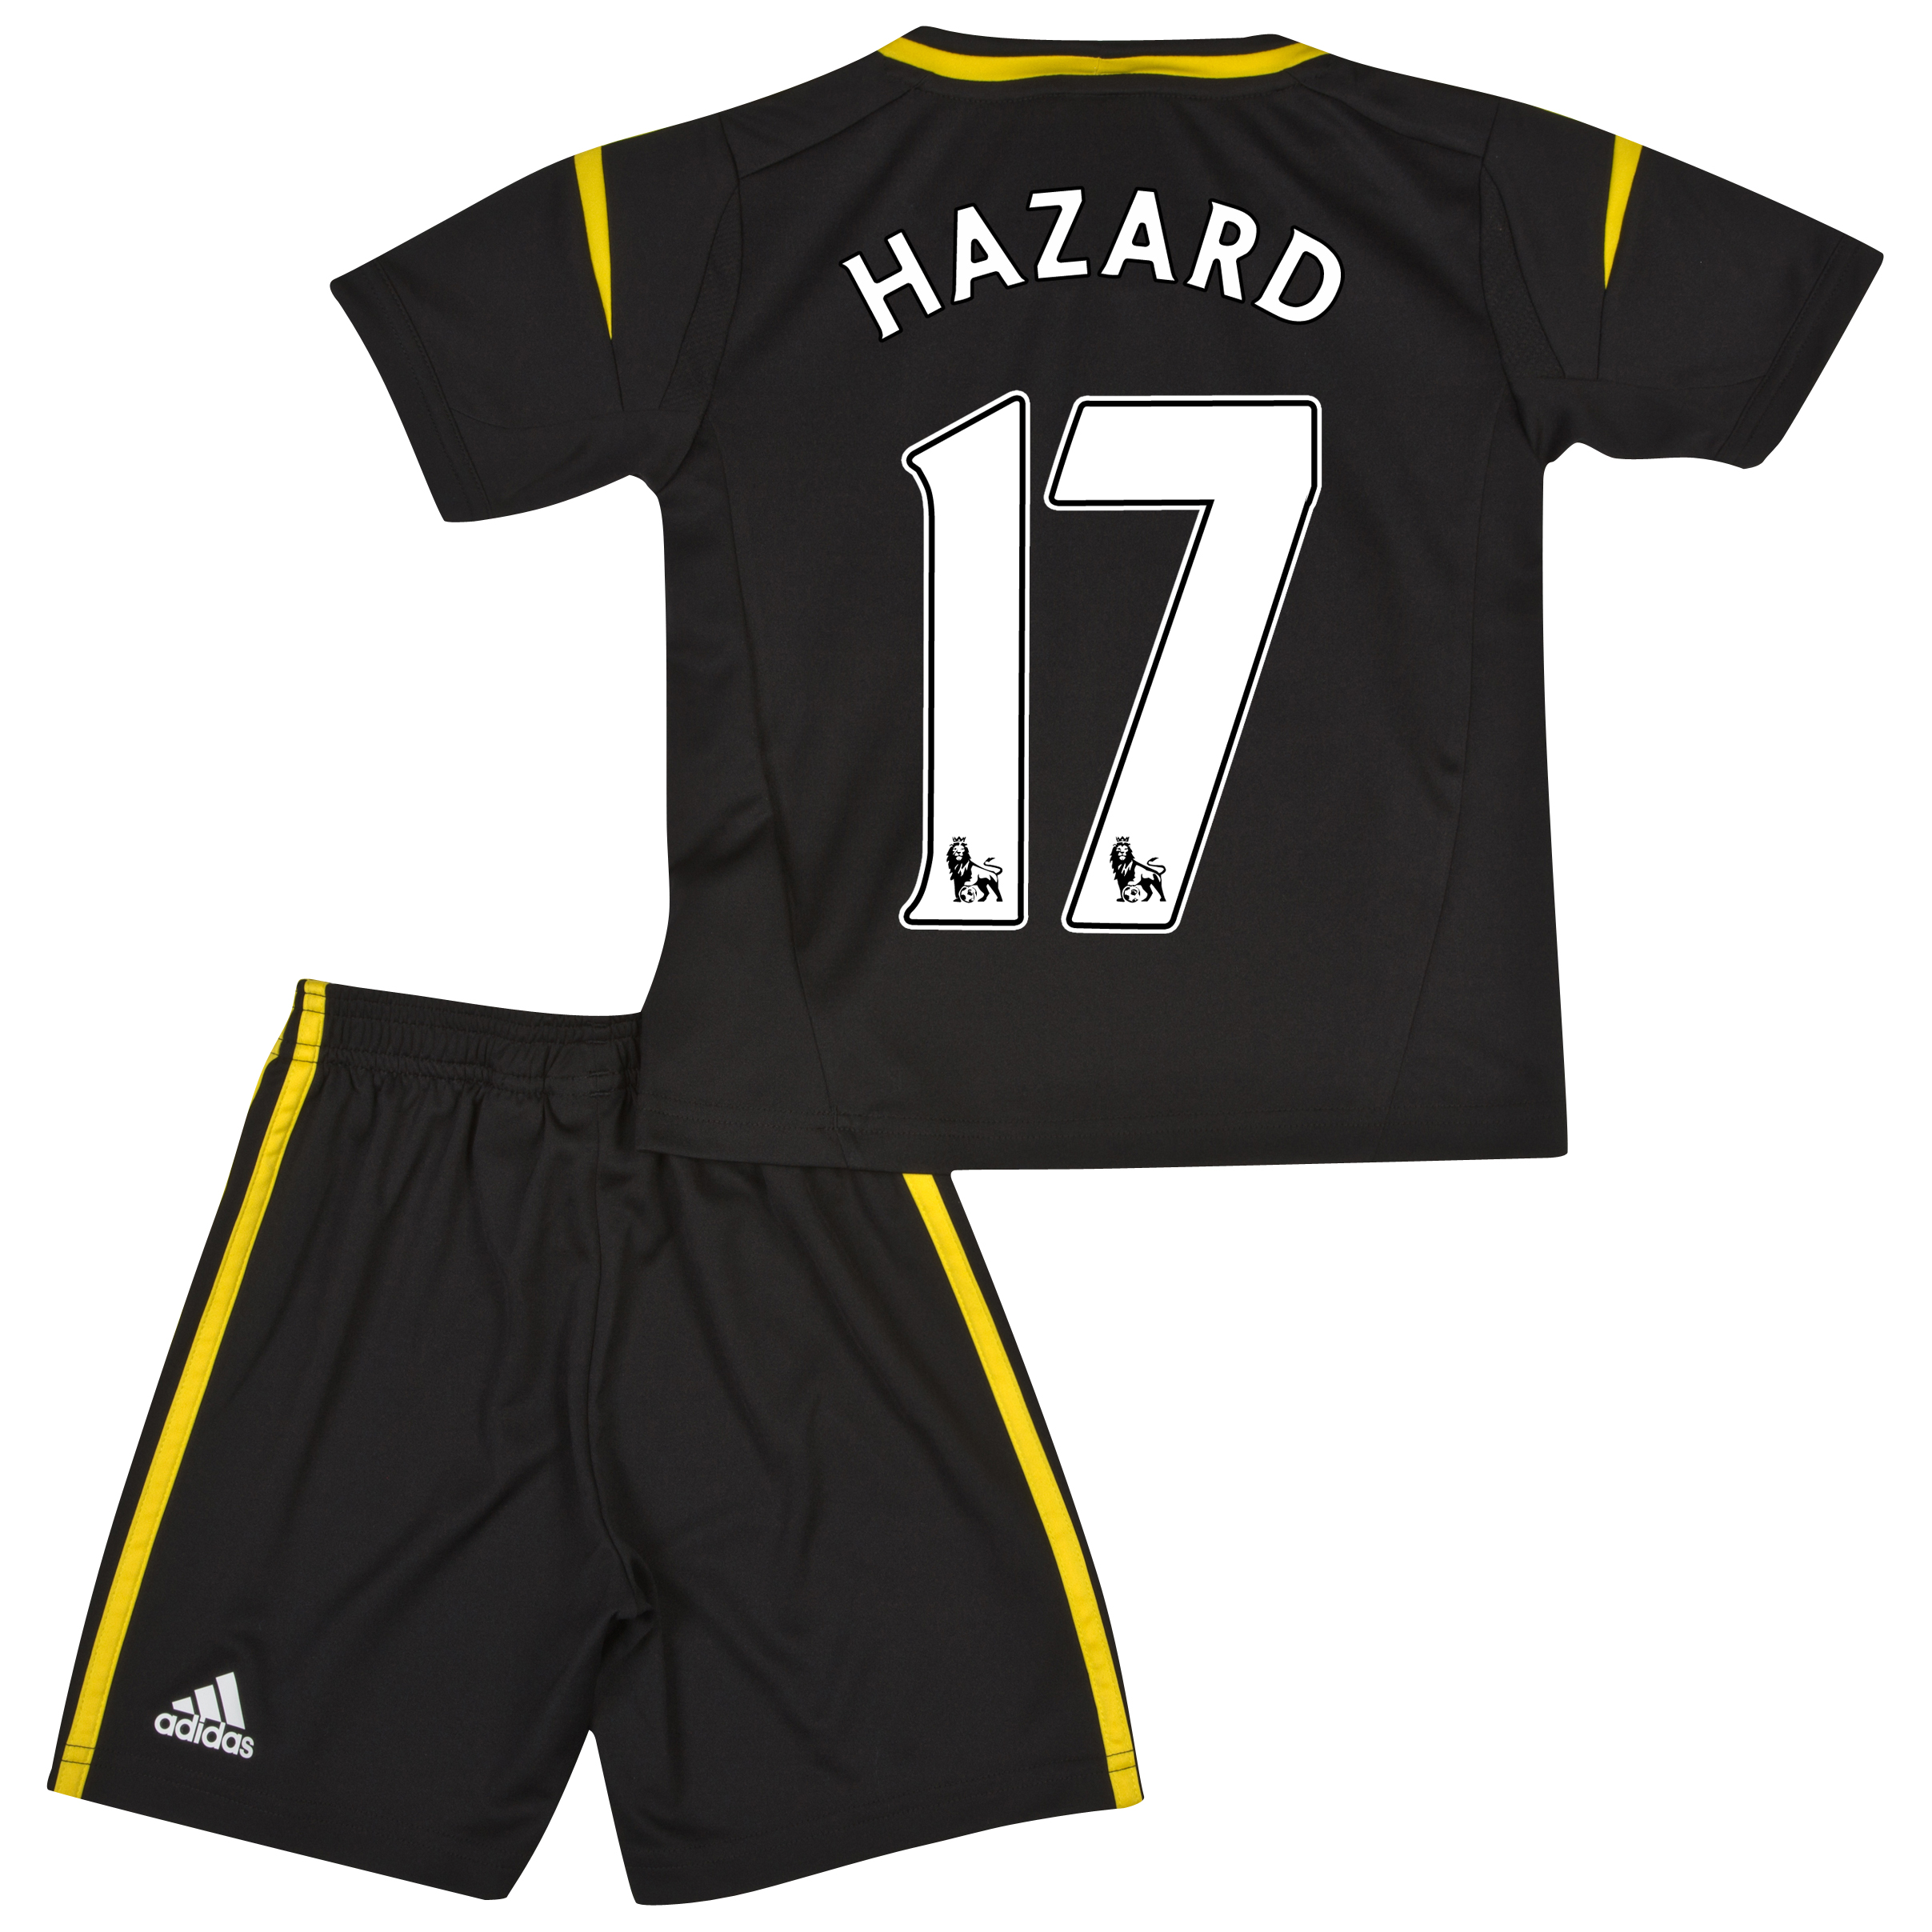 Chelsea Third Mini Kit 2012/13 with Hazard 17 printing